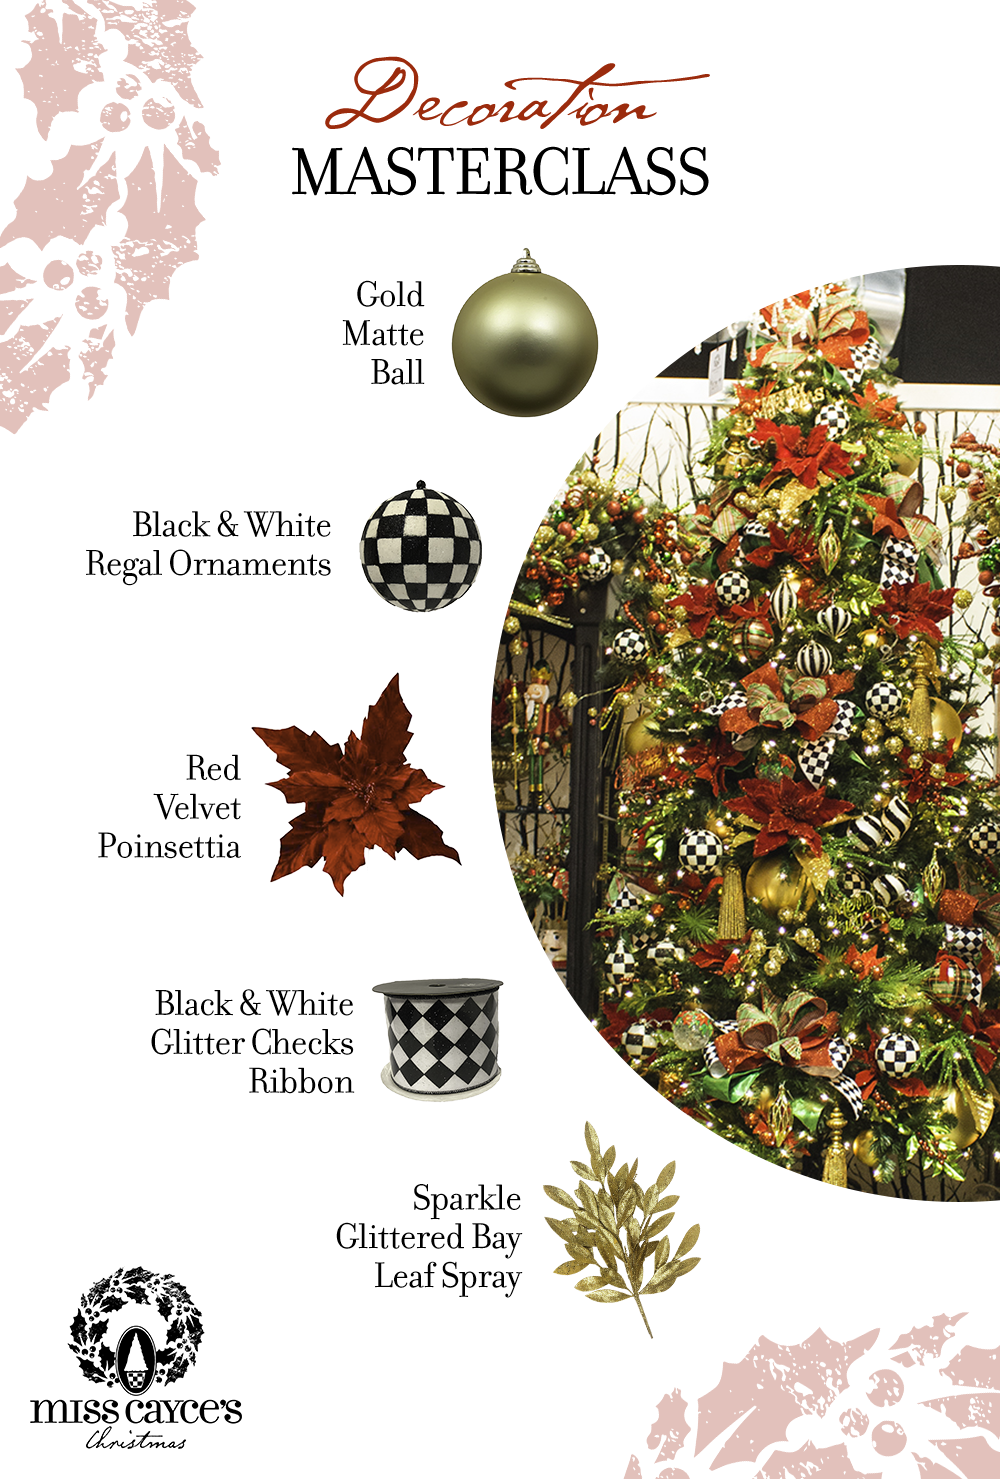 Miss Cayce S Christmas Online For High Quality Trees Decorations Ornaments Wreaths And Home Décor